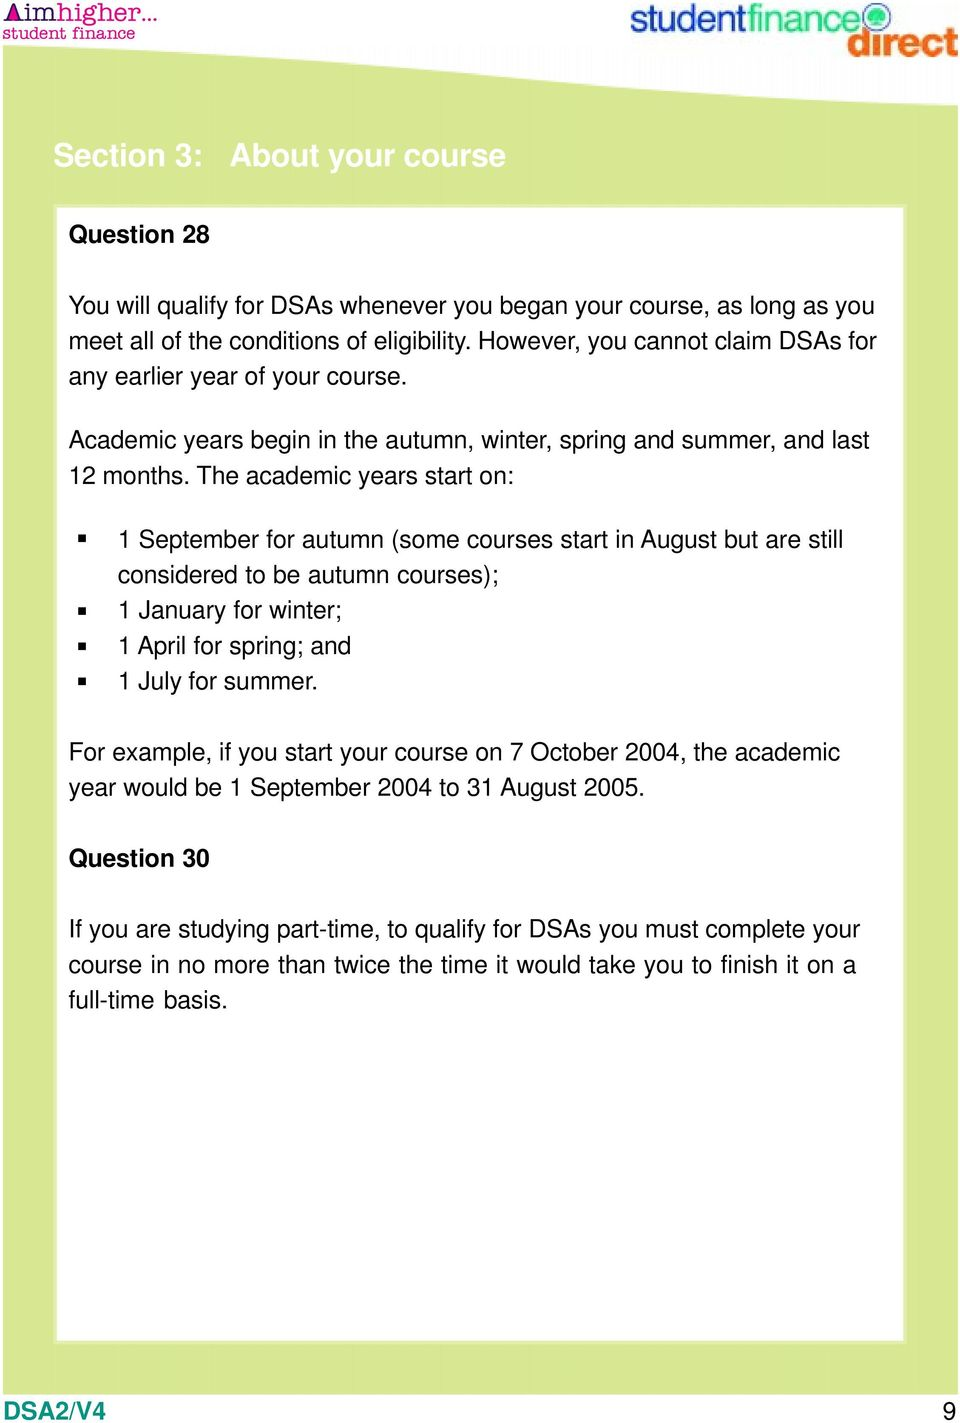 The academic years start on: 1 September for autumn (some courses start in August but are still considered to be autumn courses); 1 January for winter; 1 April for spring; and 1 July for summer.